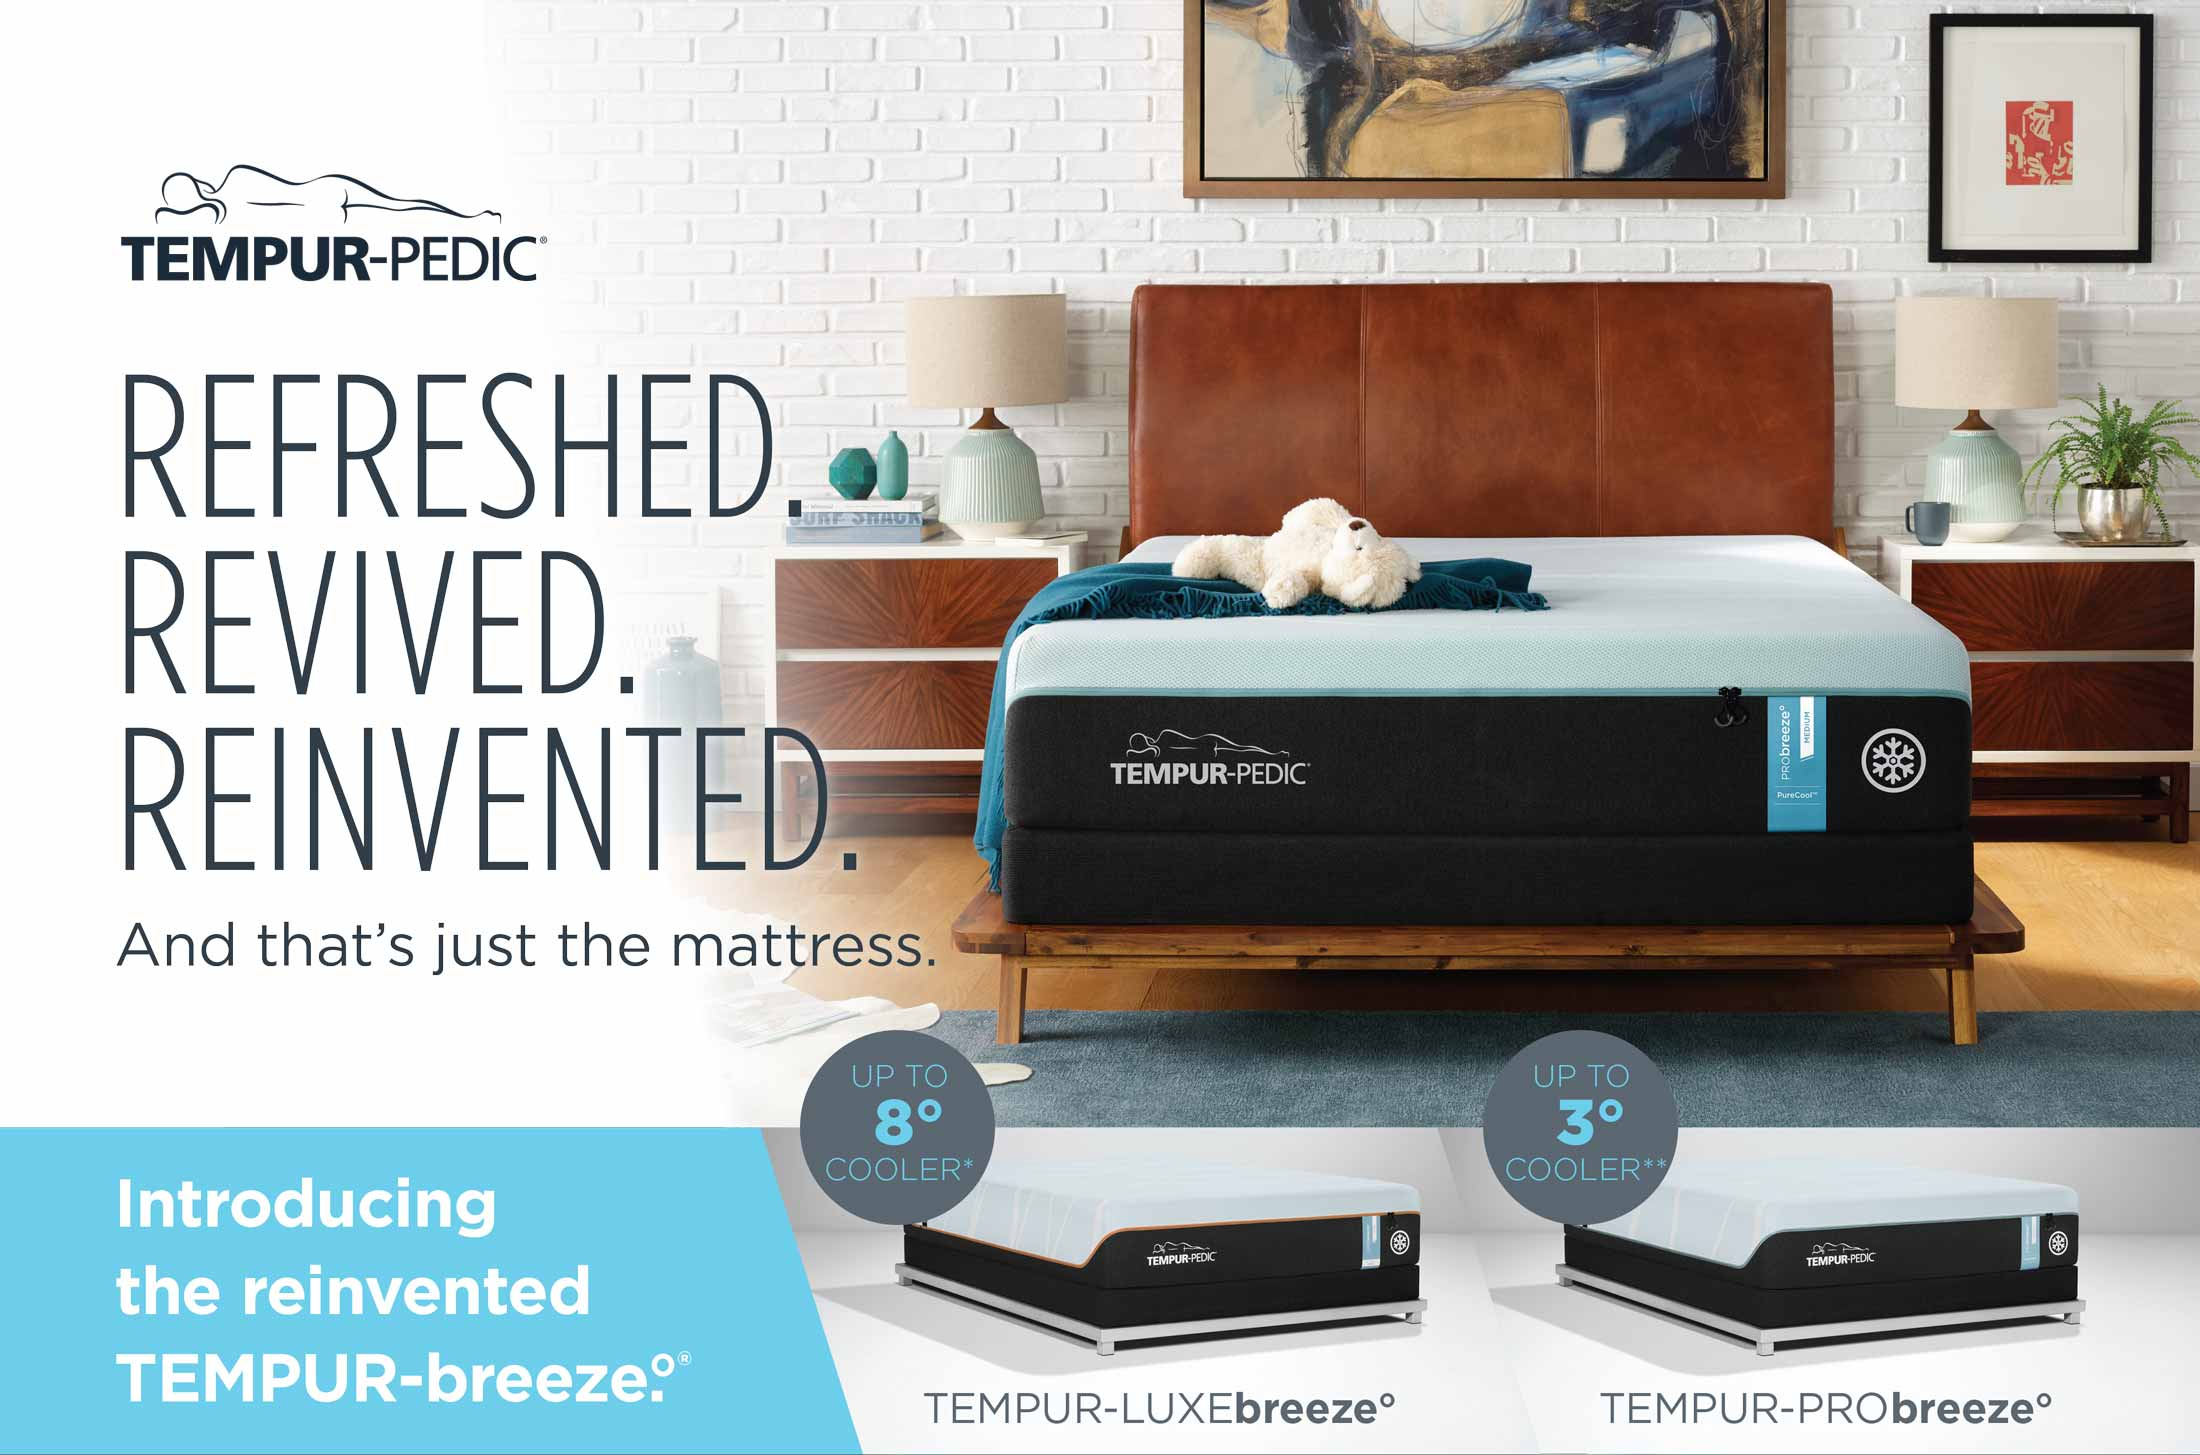 Mattresses at DeMeyer Furniture, serving Meridian, Boise, and the Treasure Valley. Image is an advertisement fro a Tempur-Pedic and Tempur-Breeze beds.